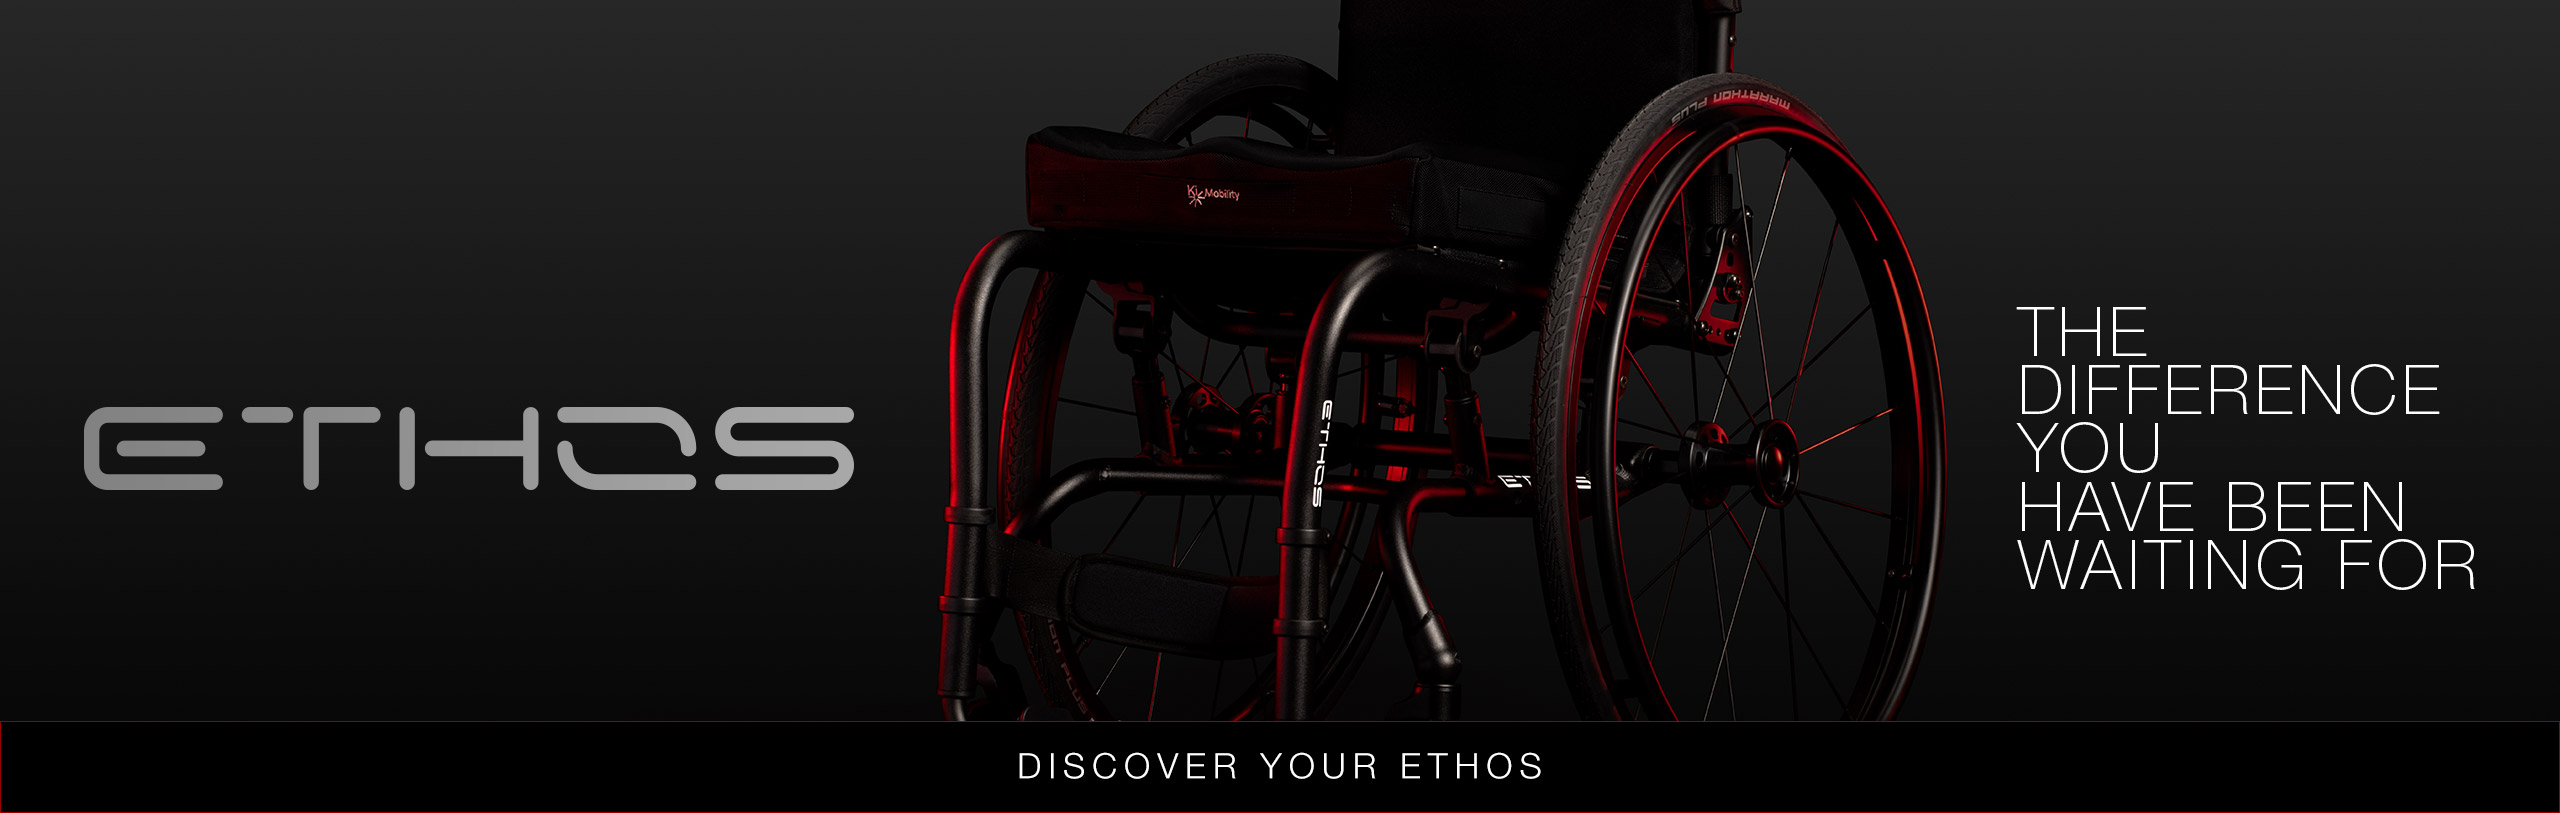 Discover Your Ethos